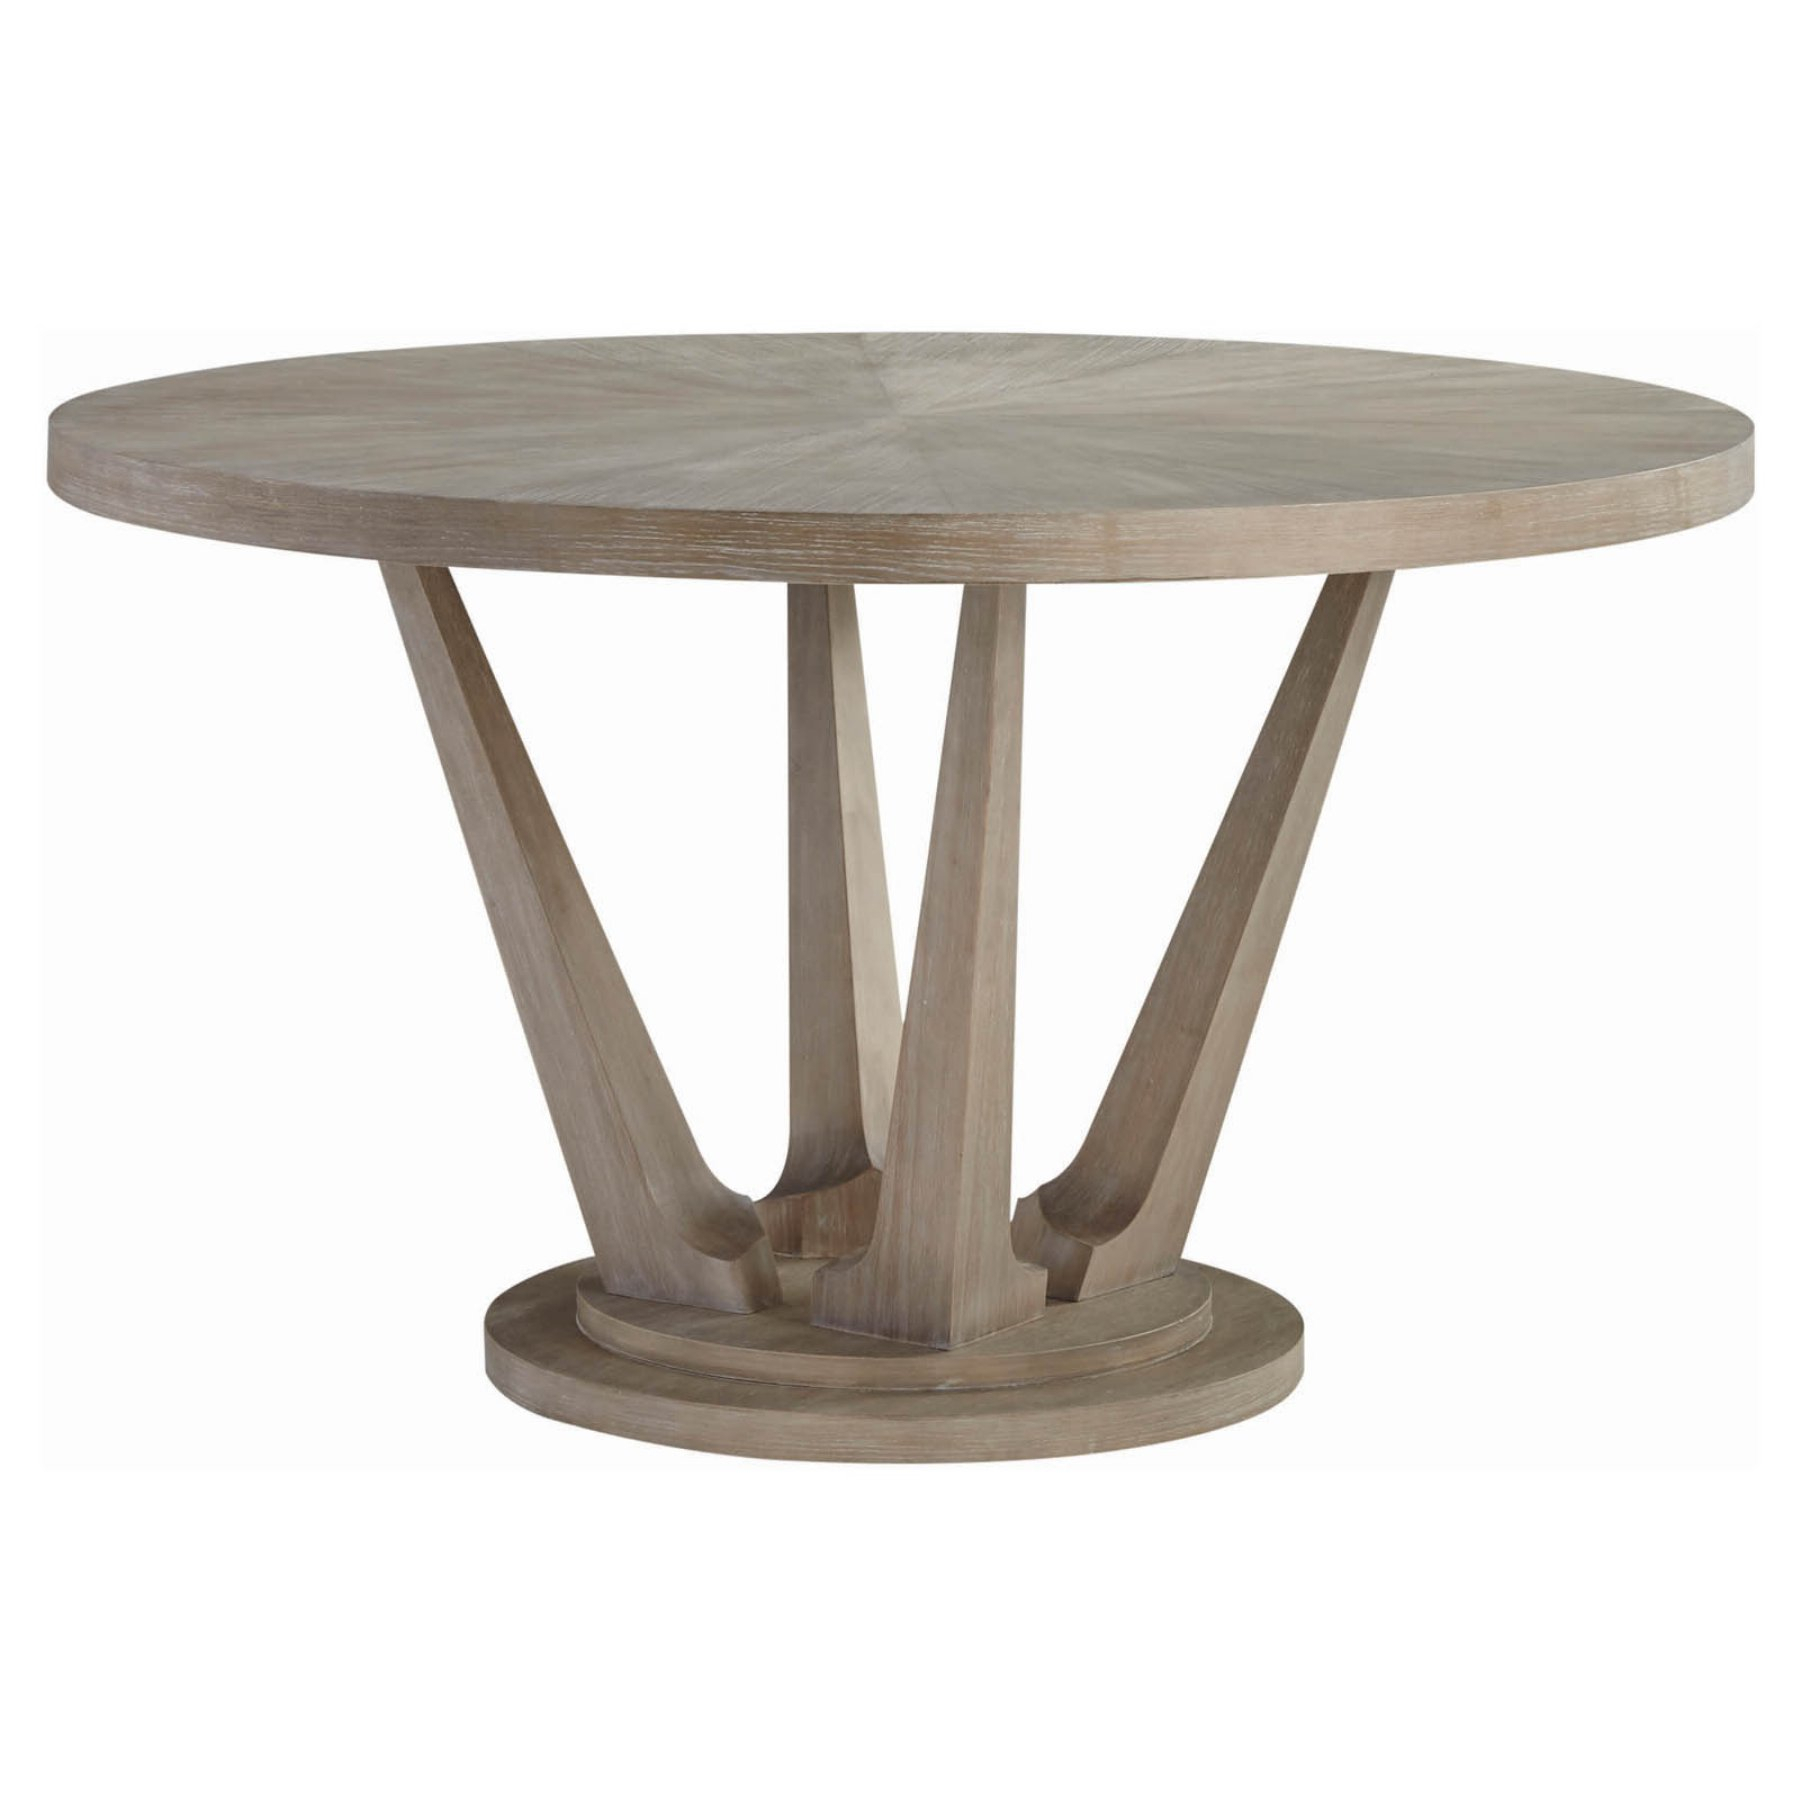 Palliser Alexandra Round Dining Table | Products In 2019 Throughout 2018 Alexandra Round Marble Pedestal Dining Tables (View 7 of 25)